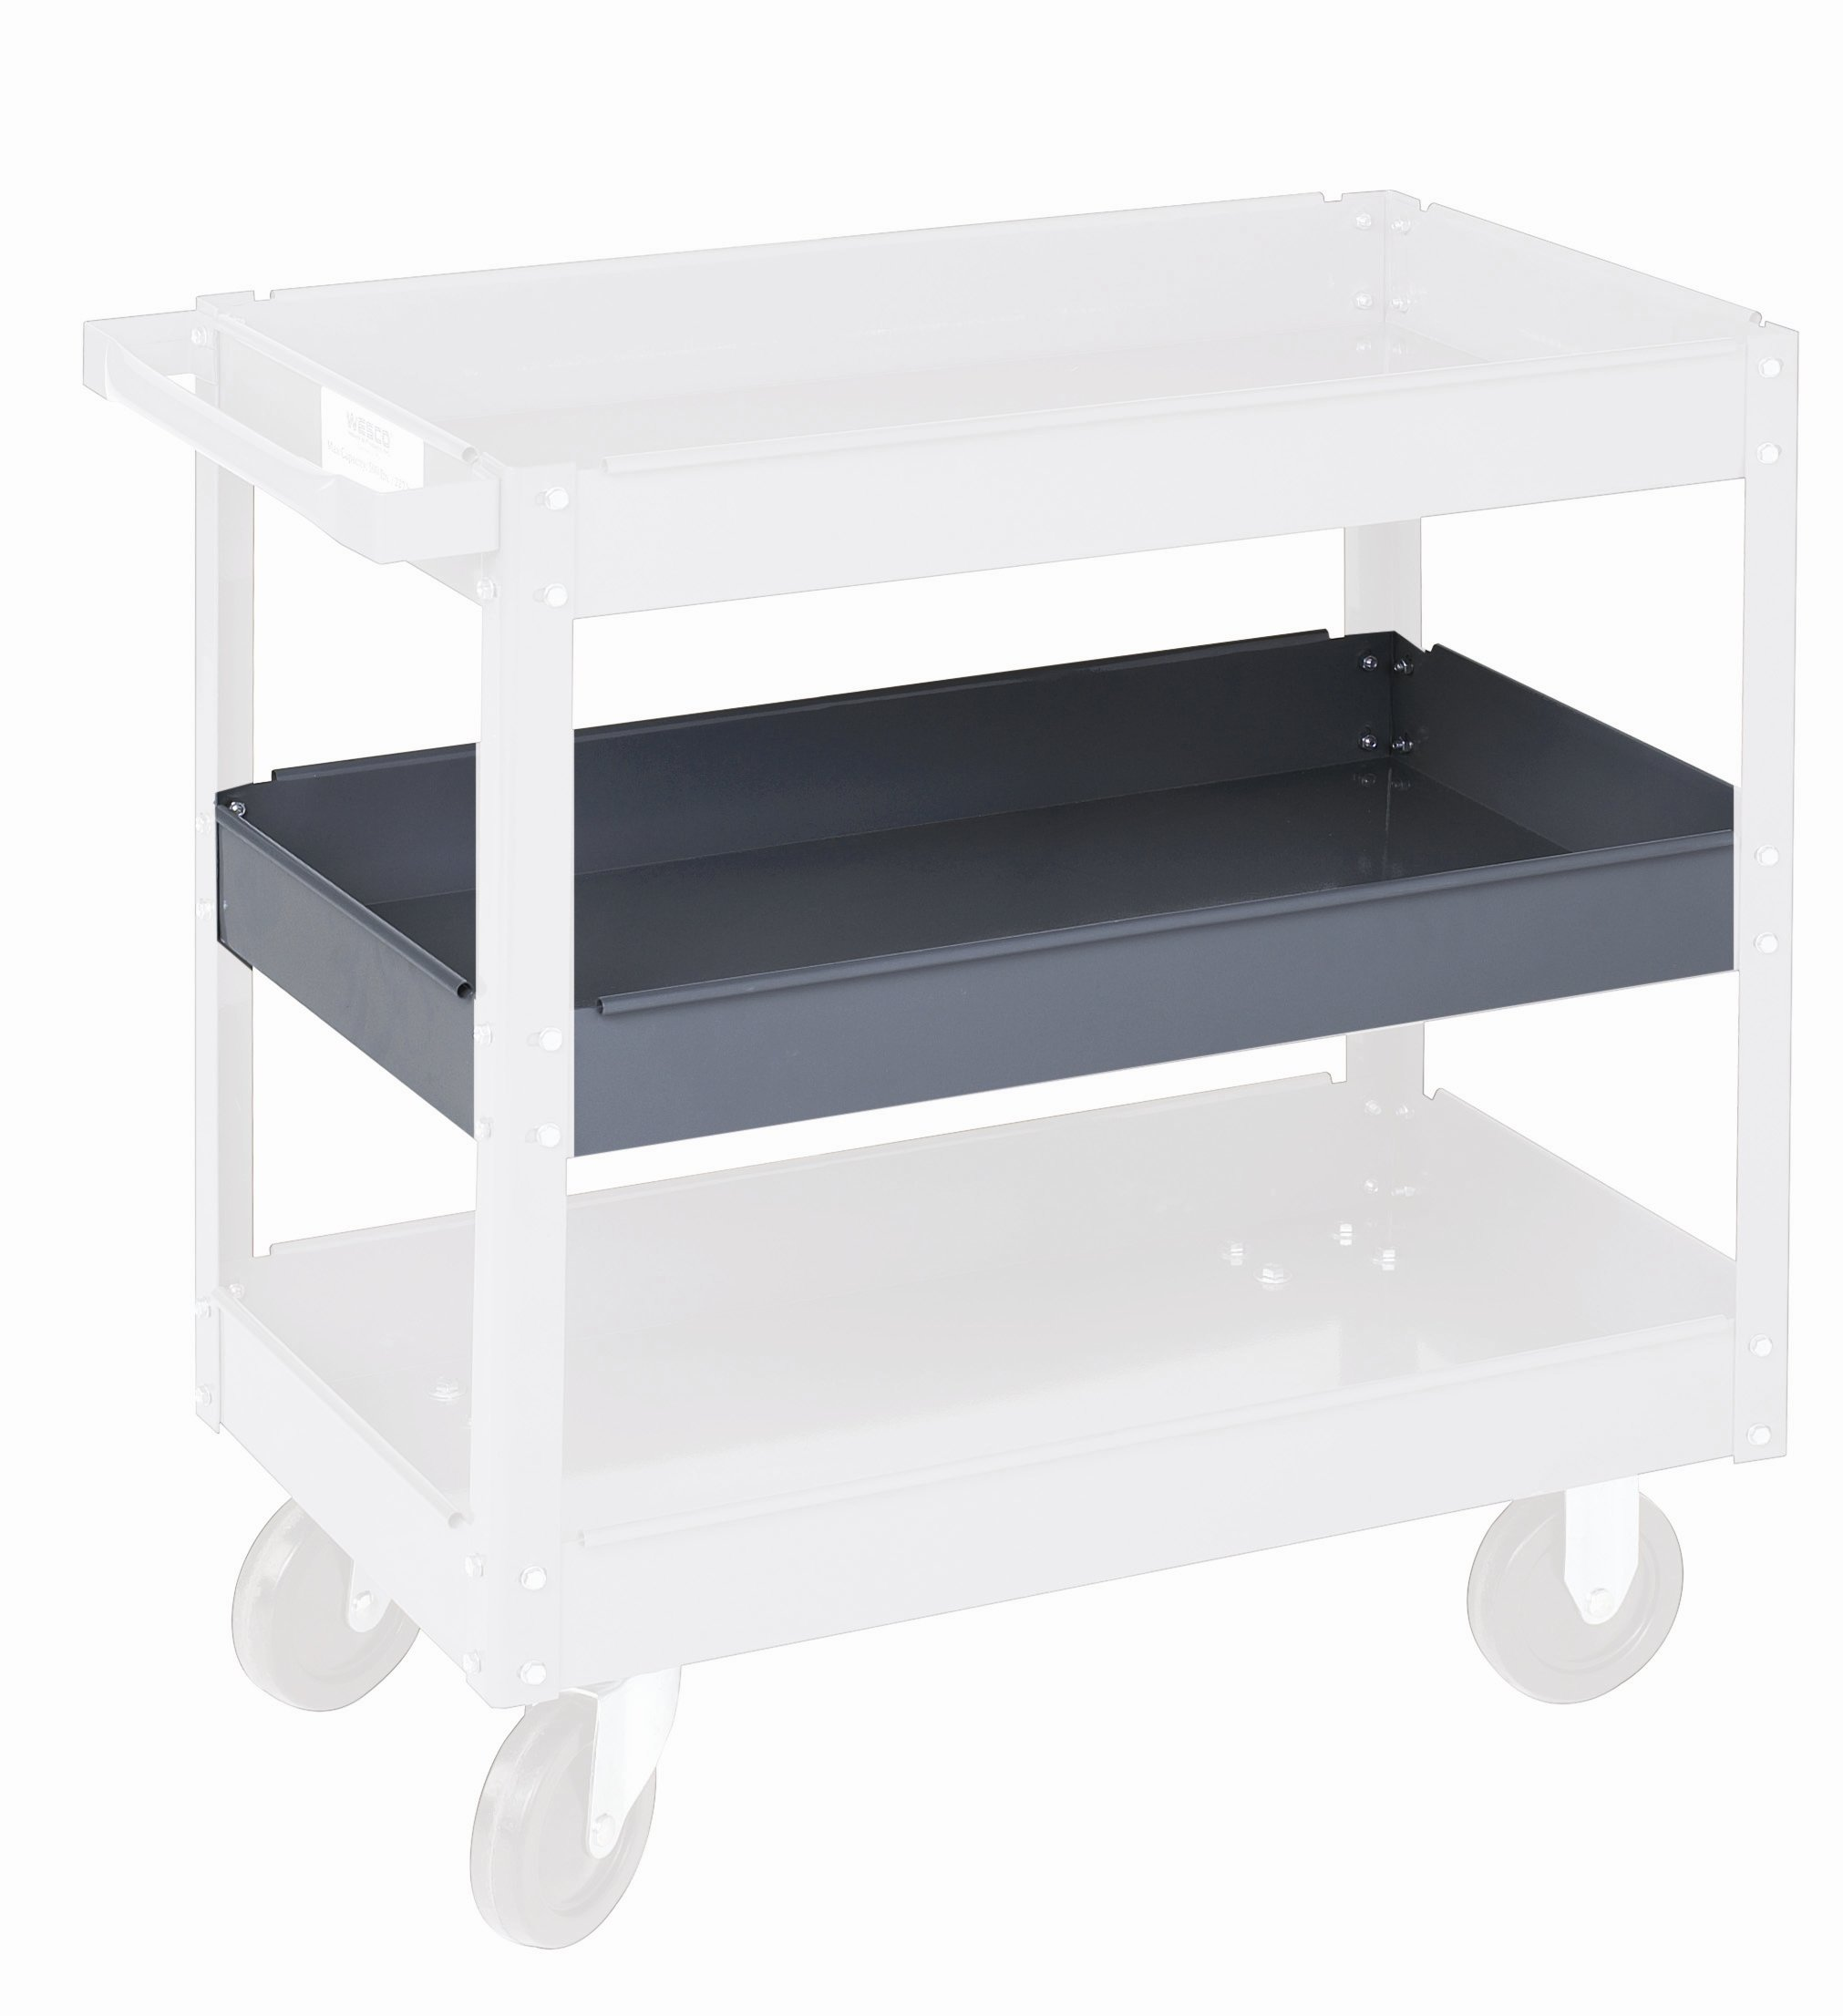 16 x 30 Optional Middle Shelf for Steel Service Cart for SC1630